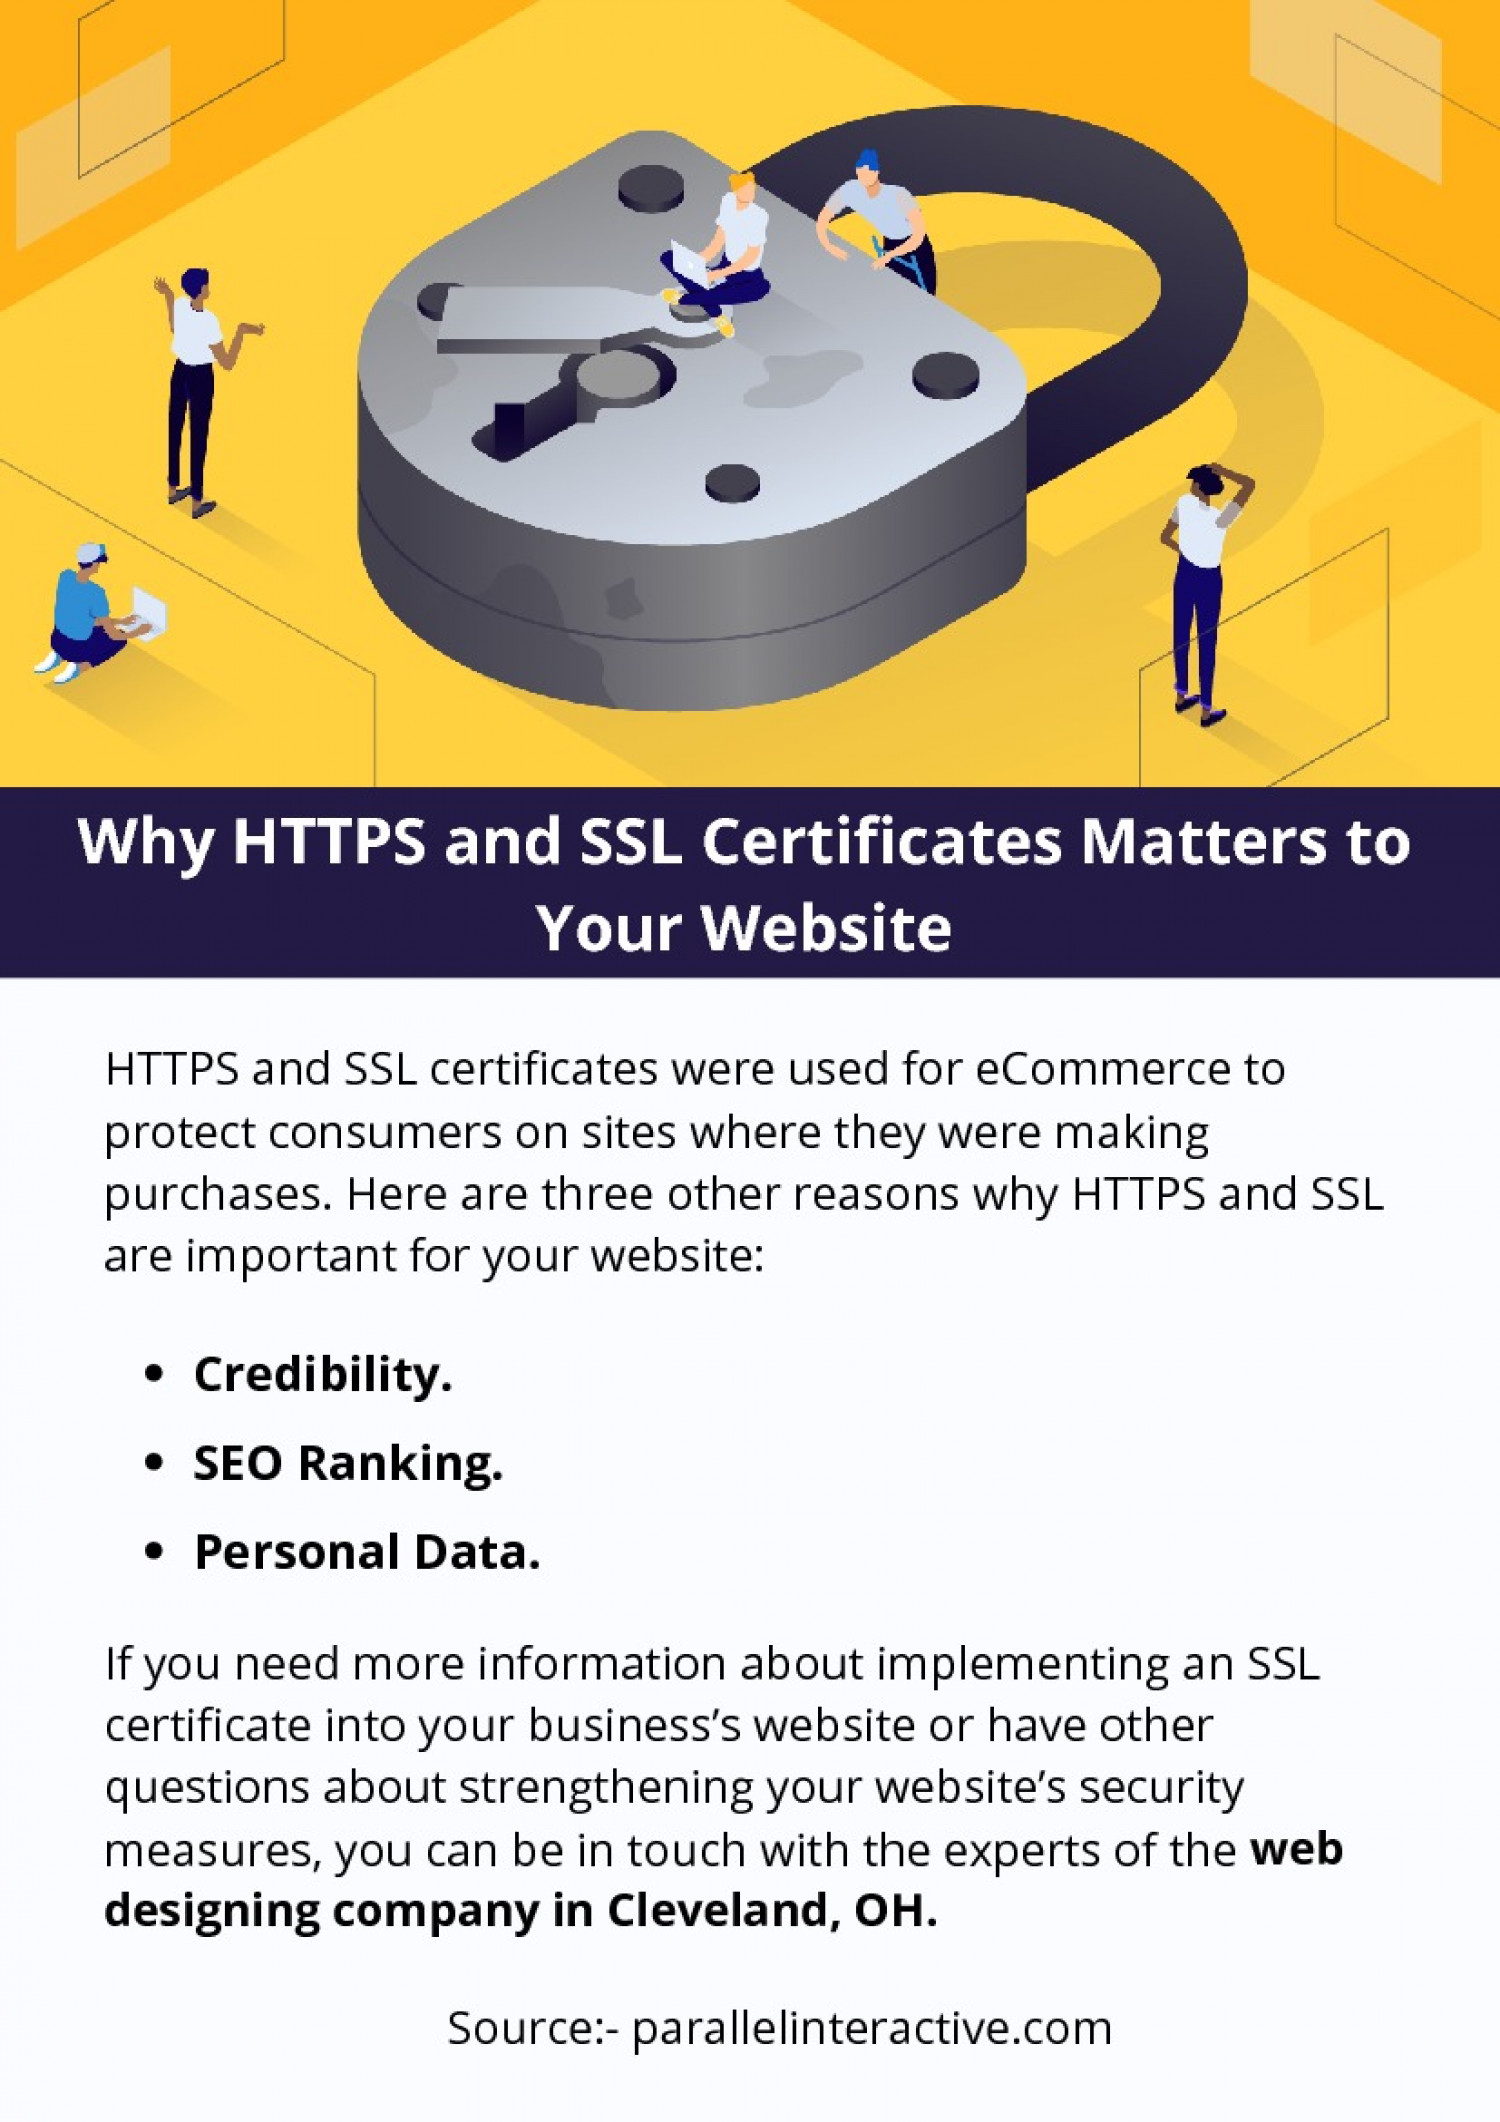 Why HTTPS and SSL Certificates Matters to Your Website Infographic